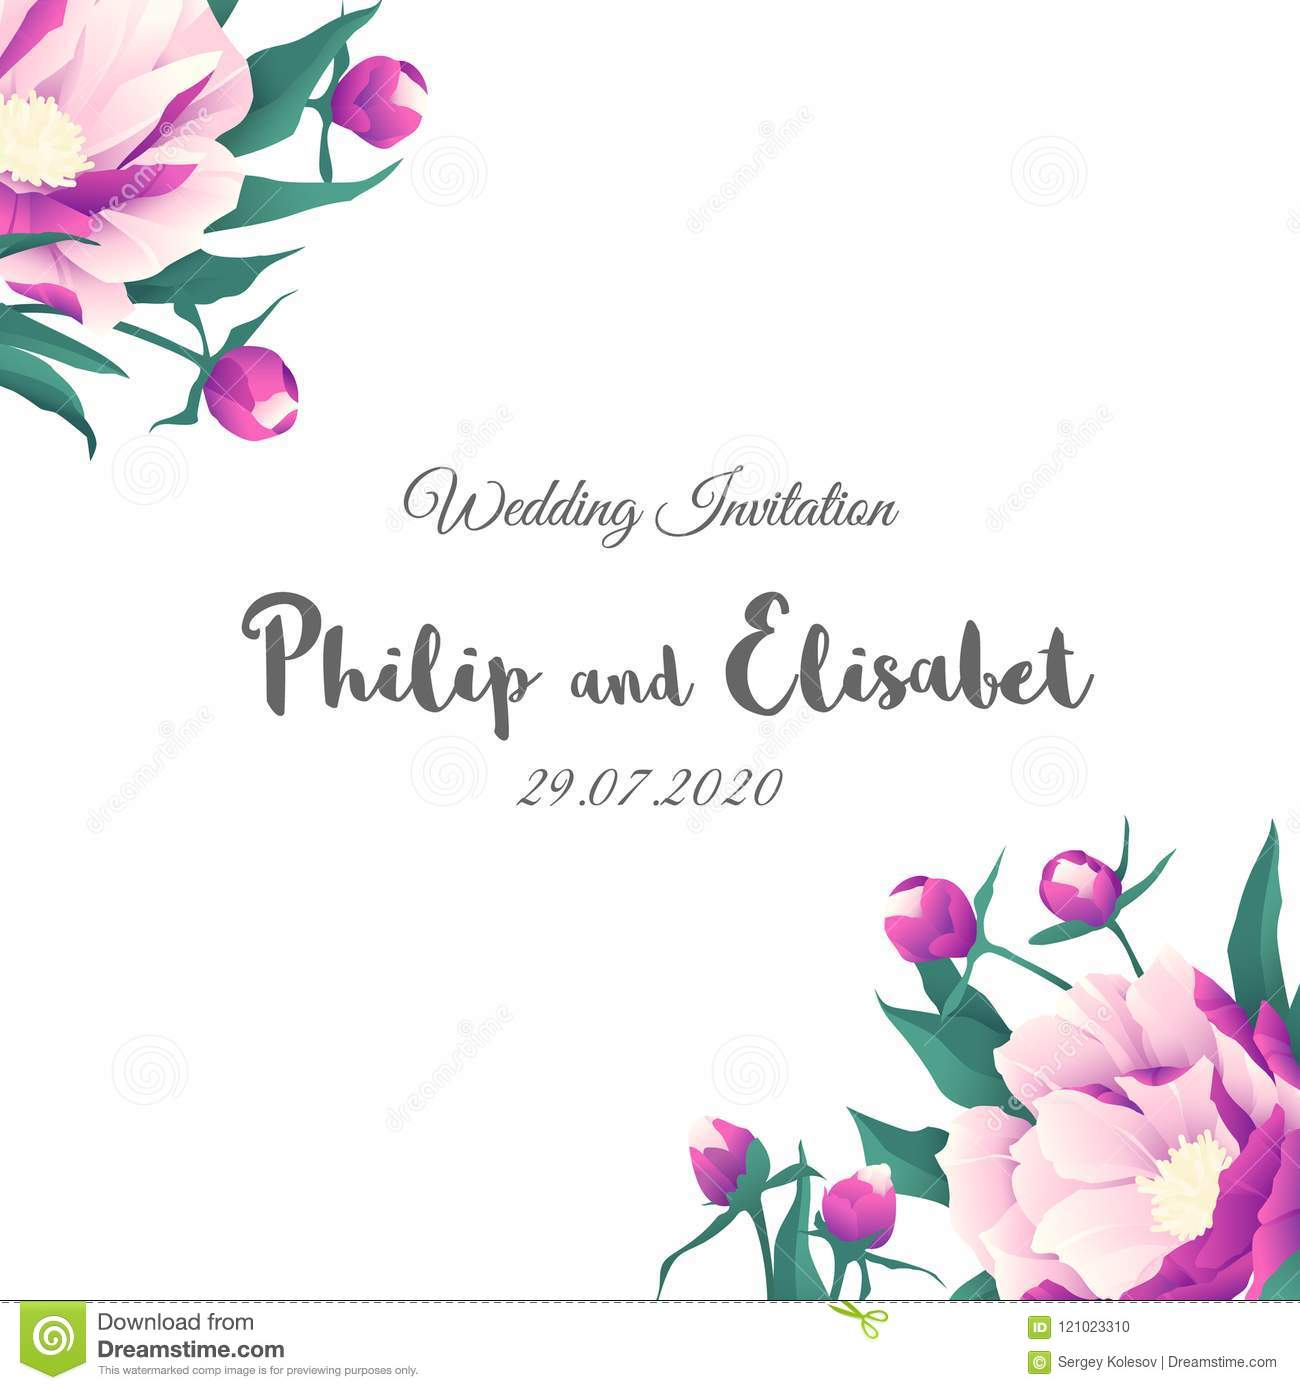 Vintage Wedding Invitation Template With Peonies Stock Vector ...